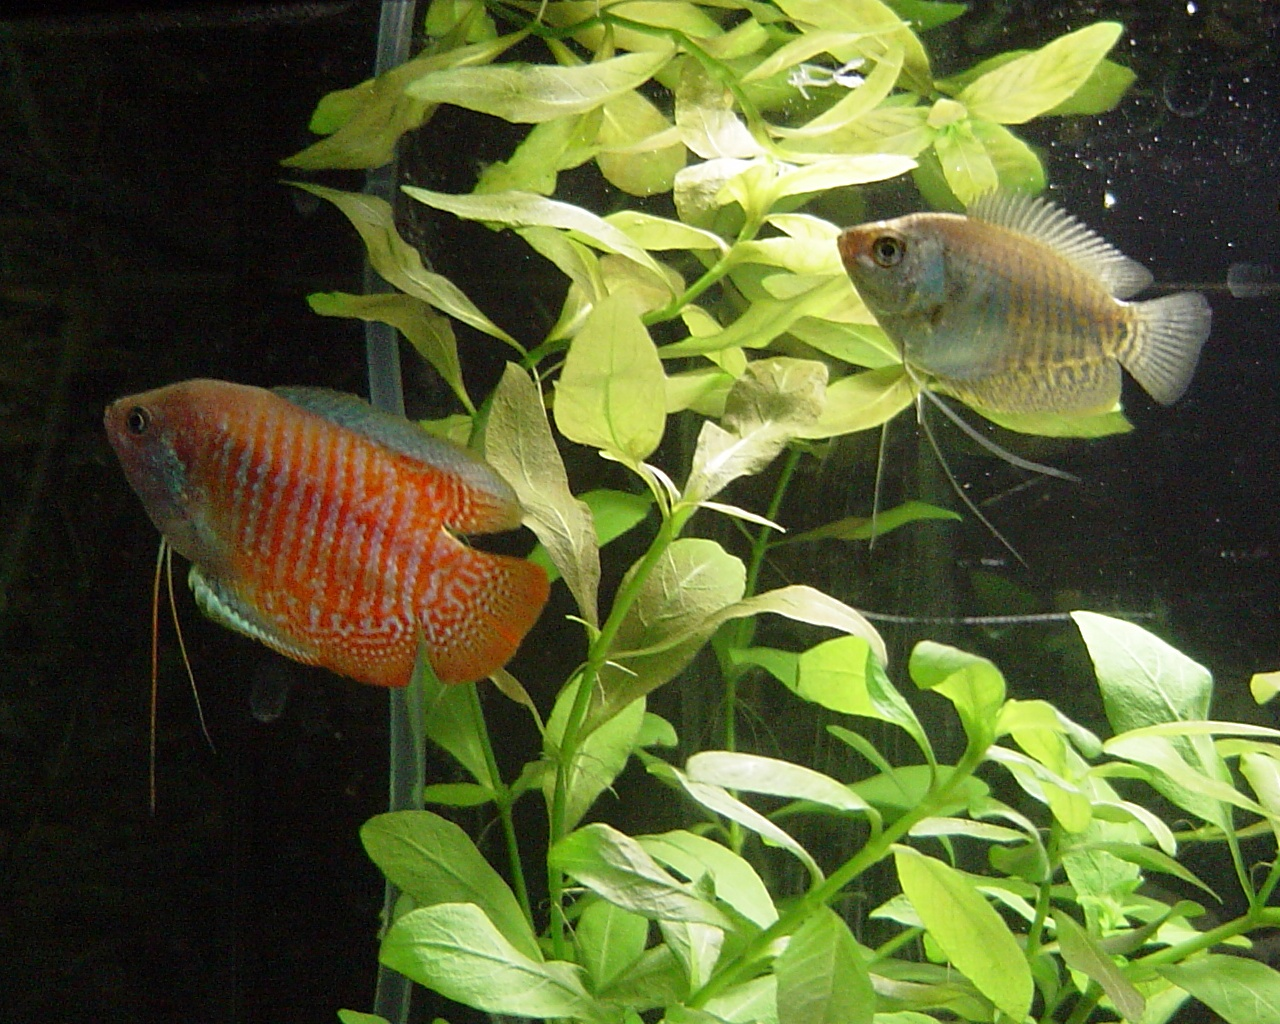 Dwarf gourami wallpaper